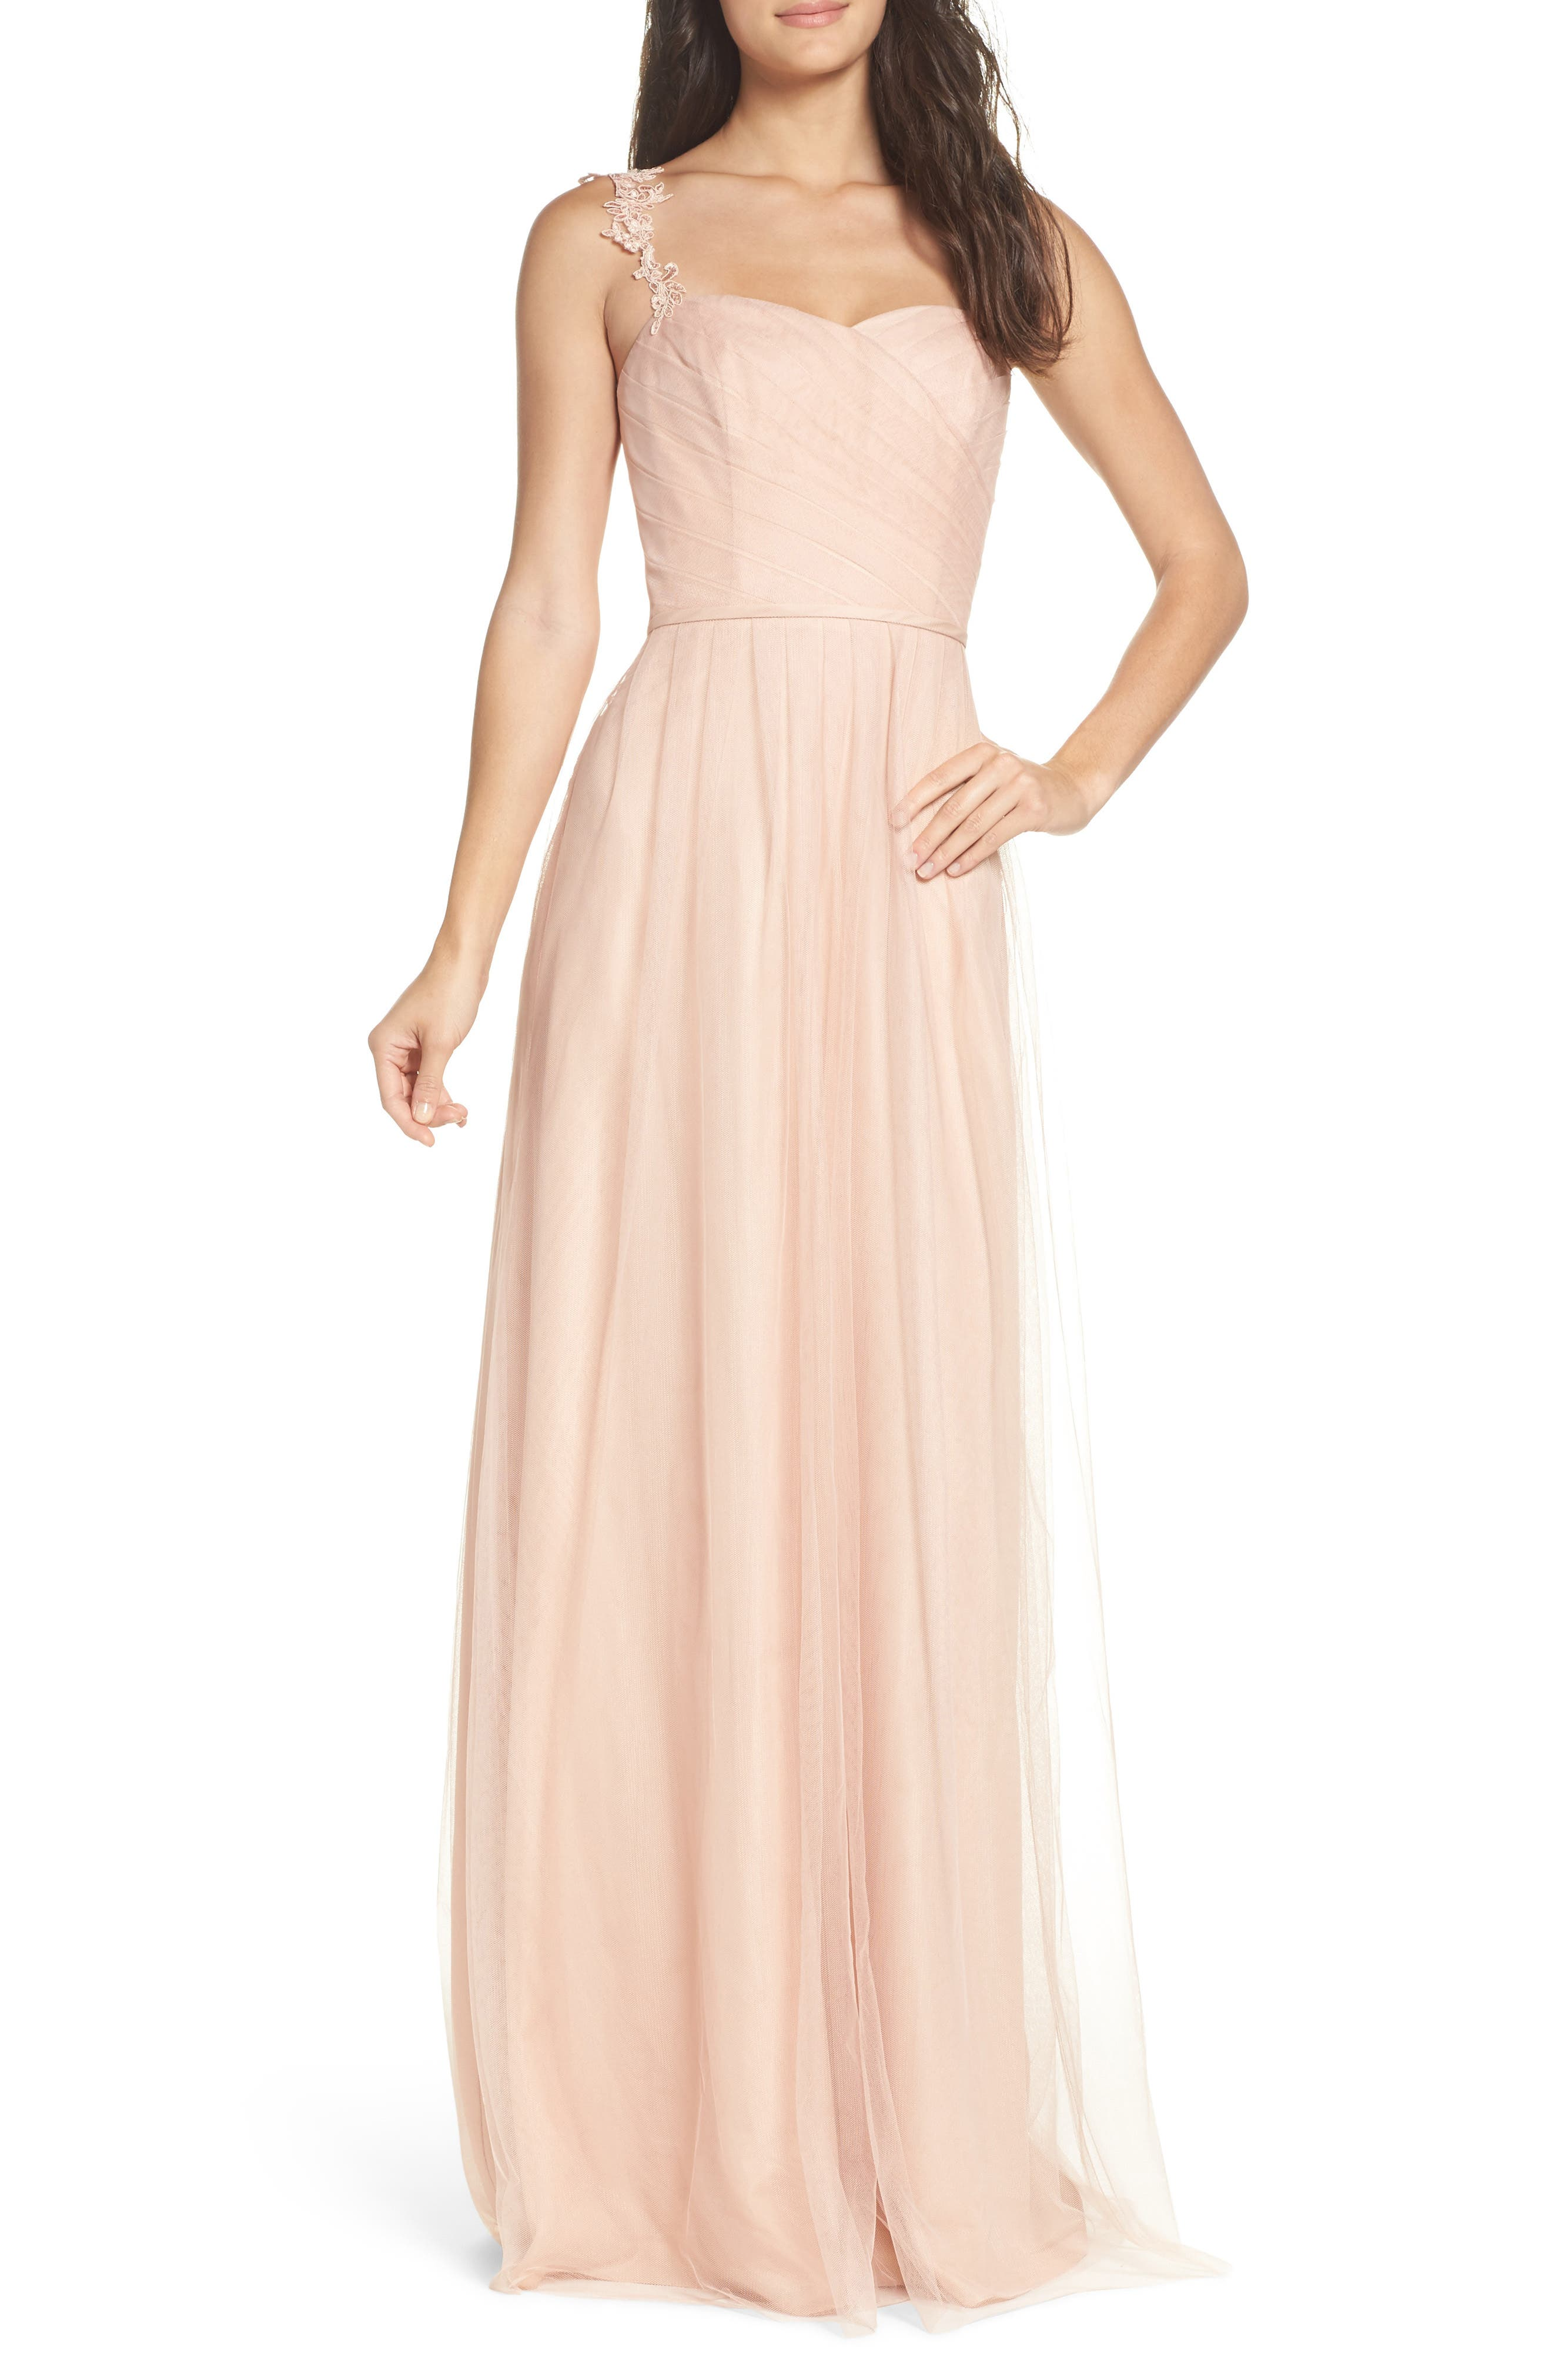 Alternate Image 1 Selected - Monique Lhuillier Bridesmaids Violetta Tulle Gown (Nordstrom Exclusive)